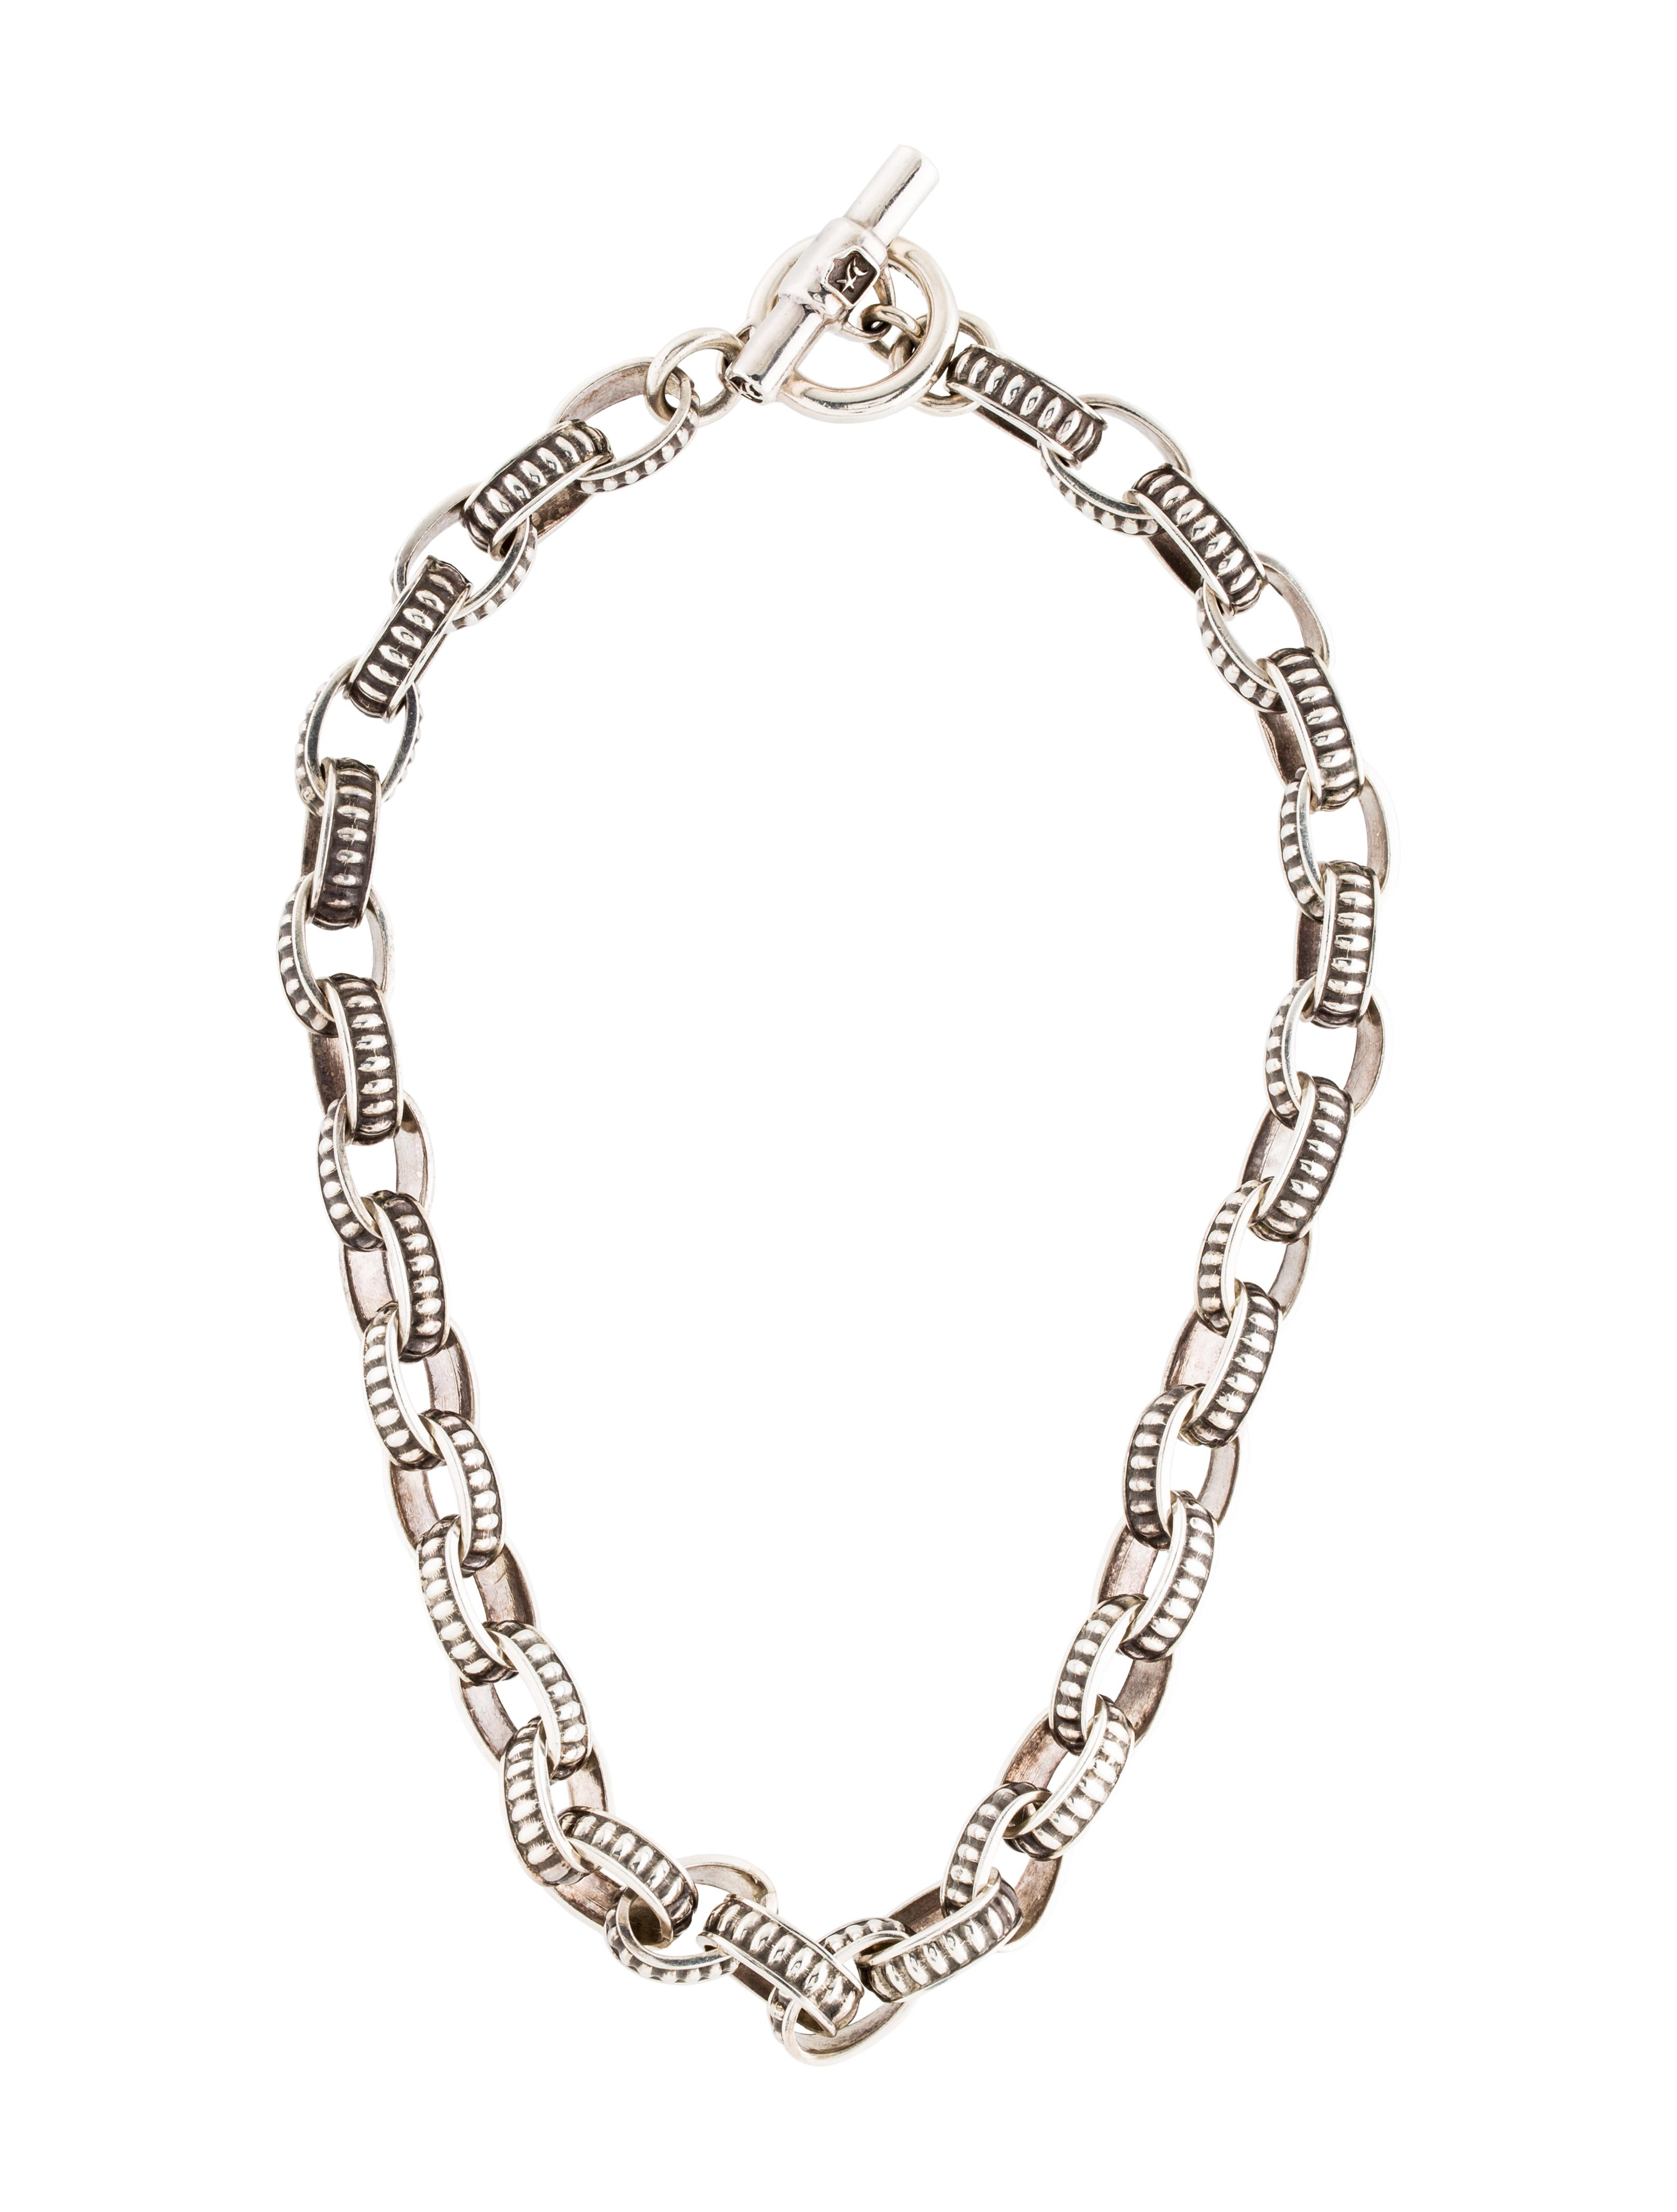 Barry kieselstein cord oval link necklace necklaces for Barry kieselstein cord jewelry